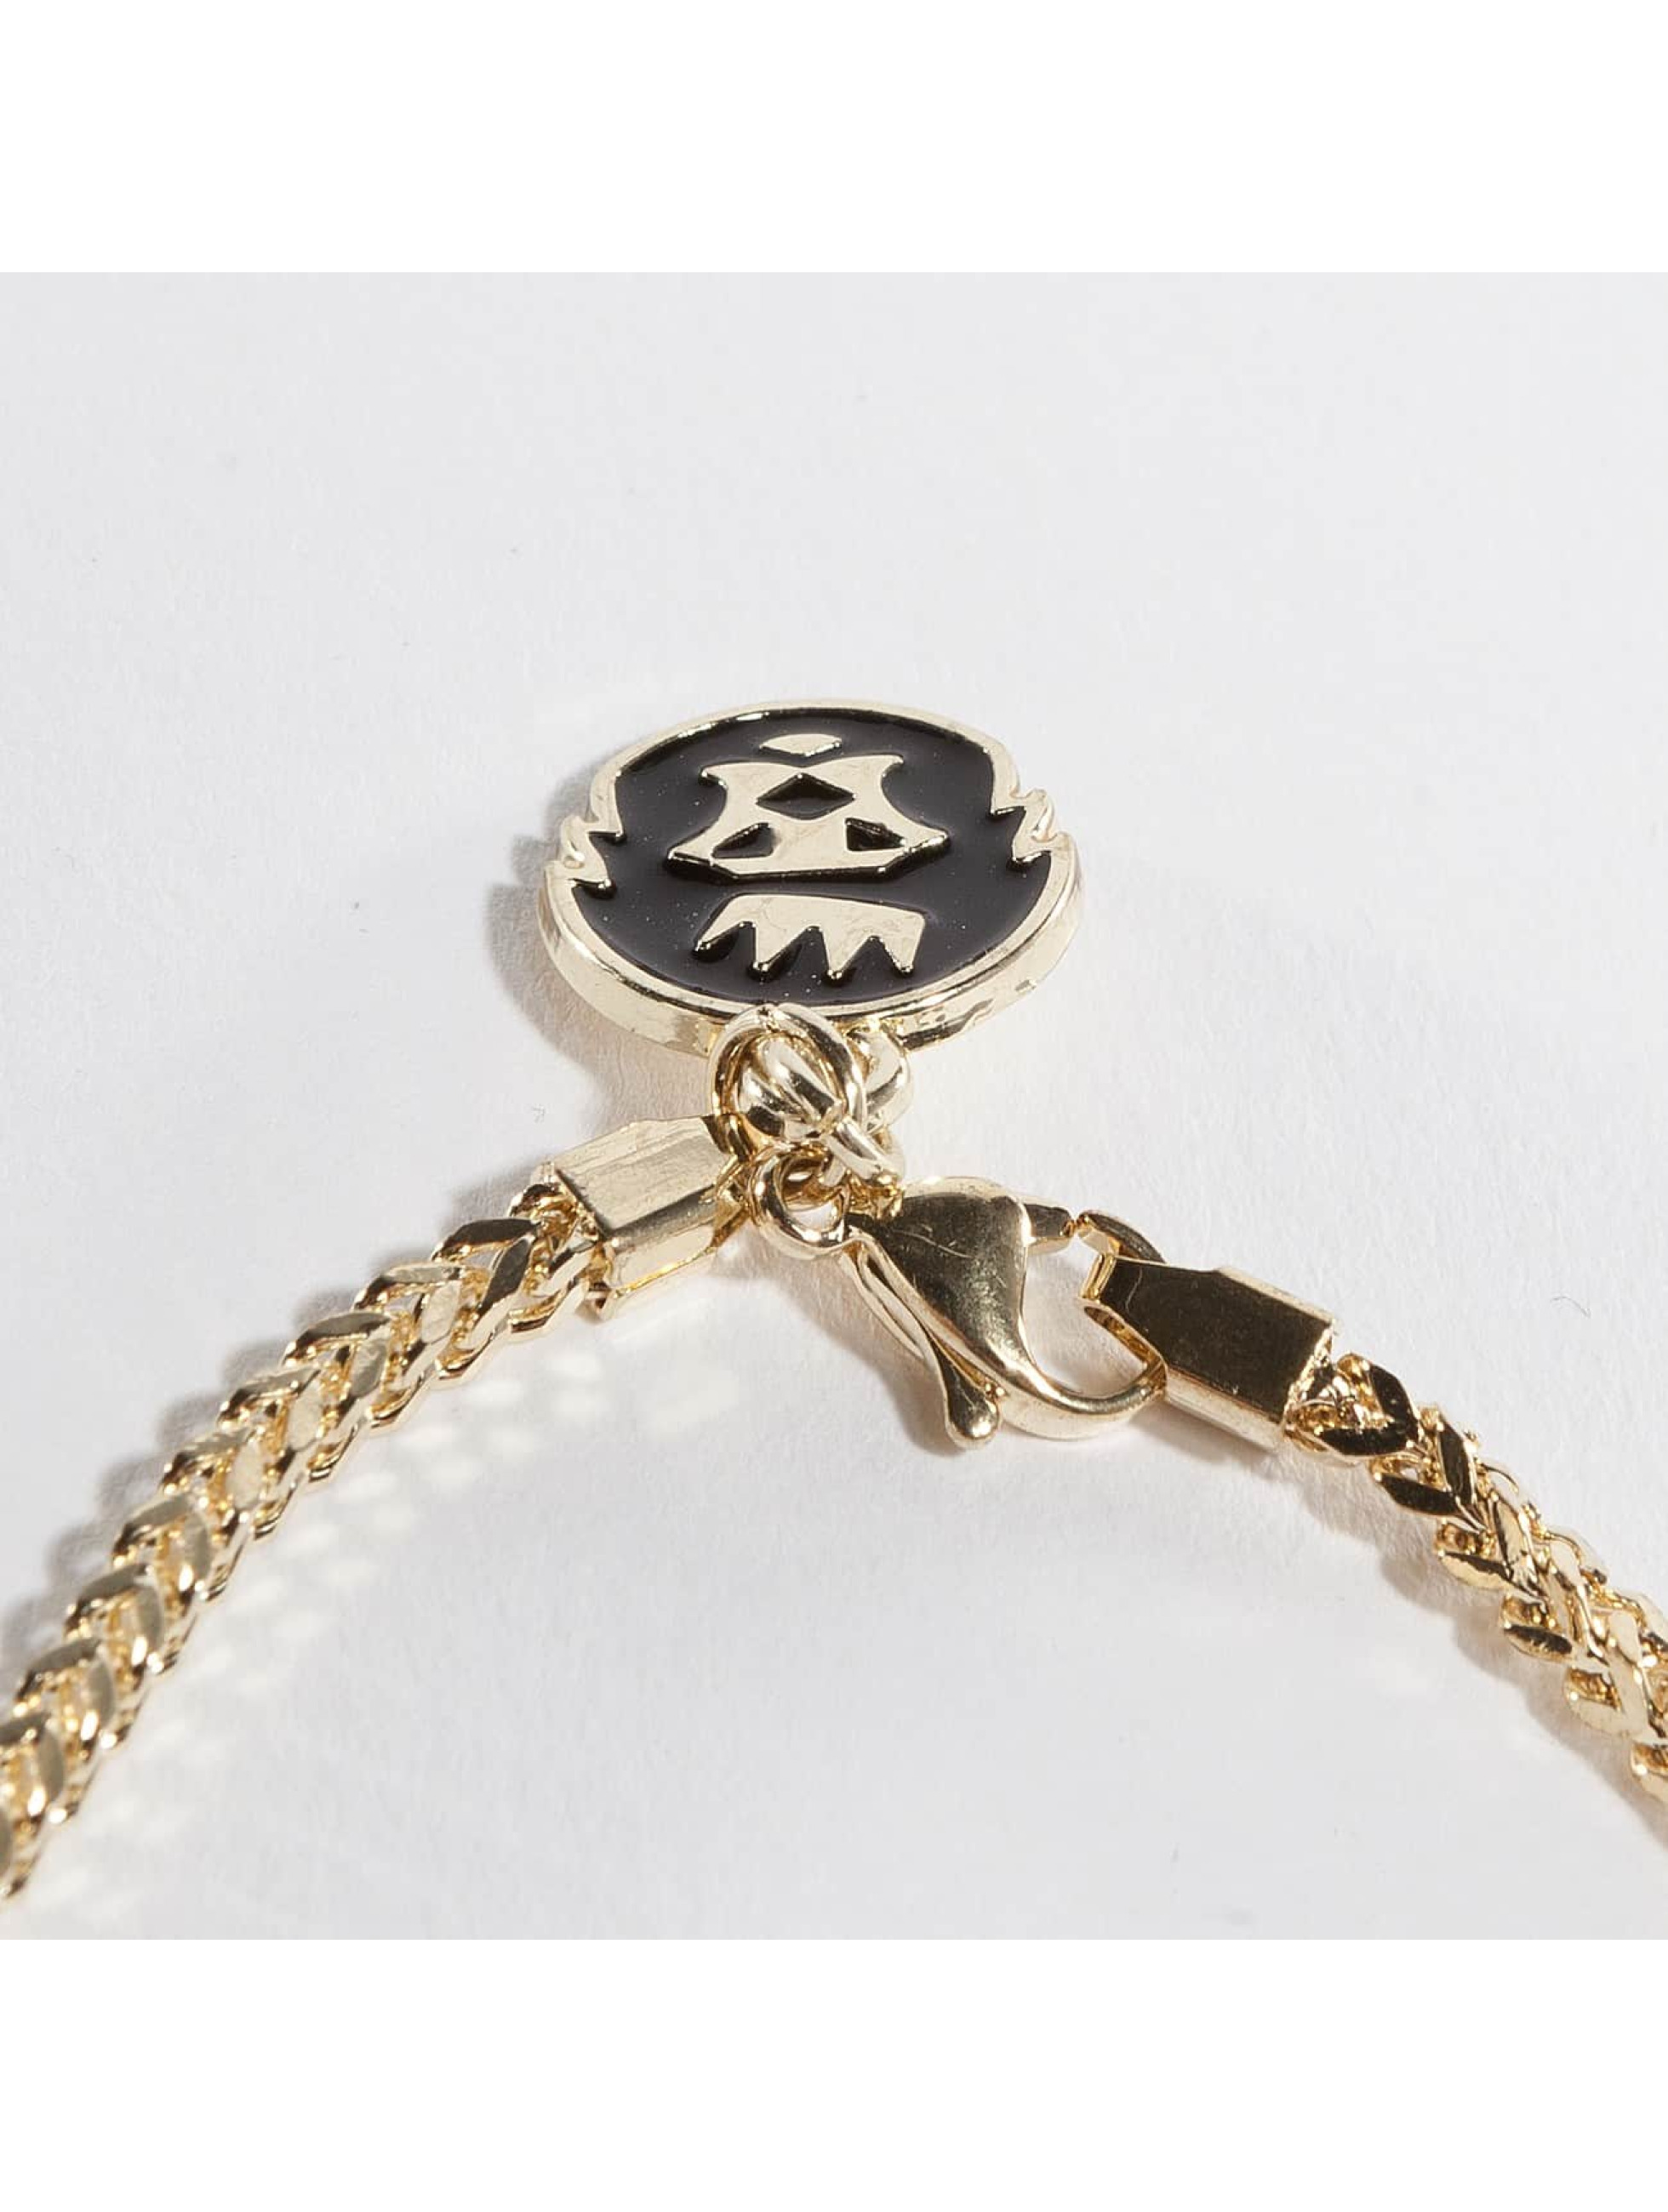 KING ICE Necklace Gold_Plated CZ The Major Key gold